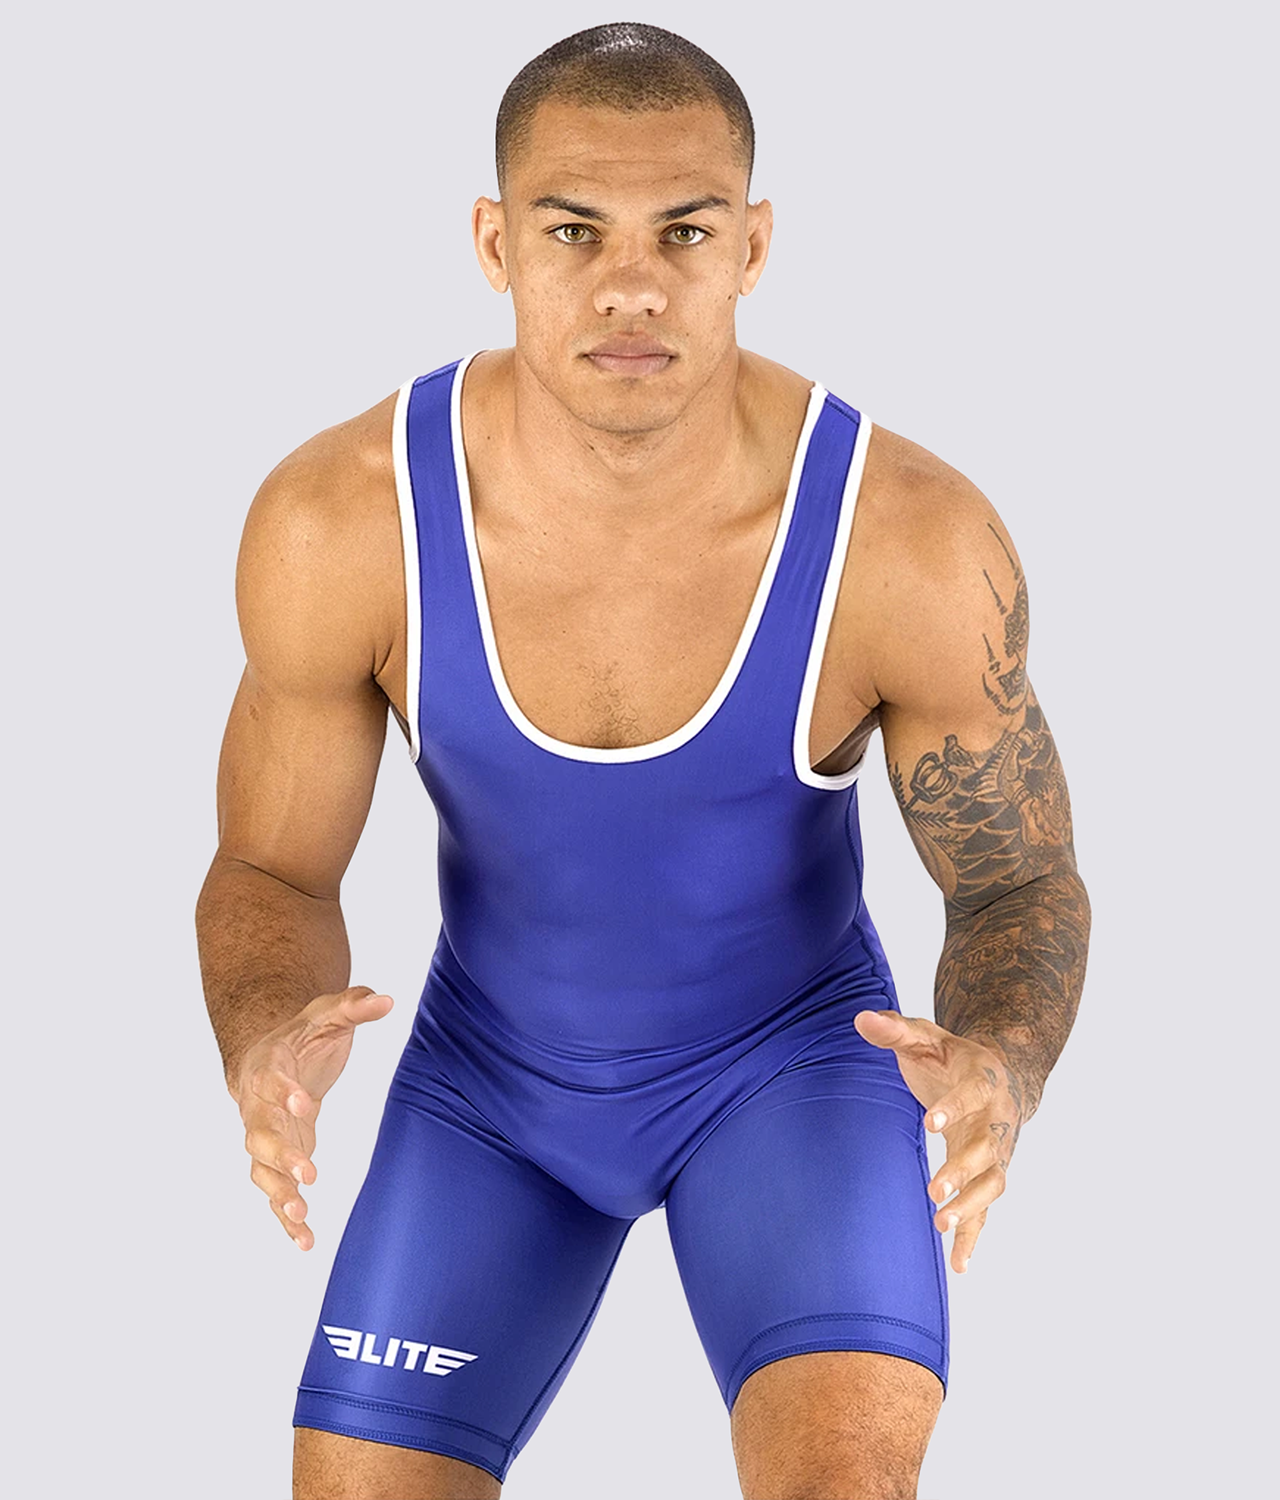 Elite Sports Standard Series Antibacterial Blue Wrestling Singlets